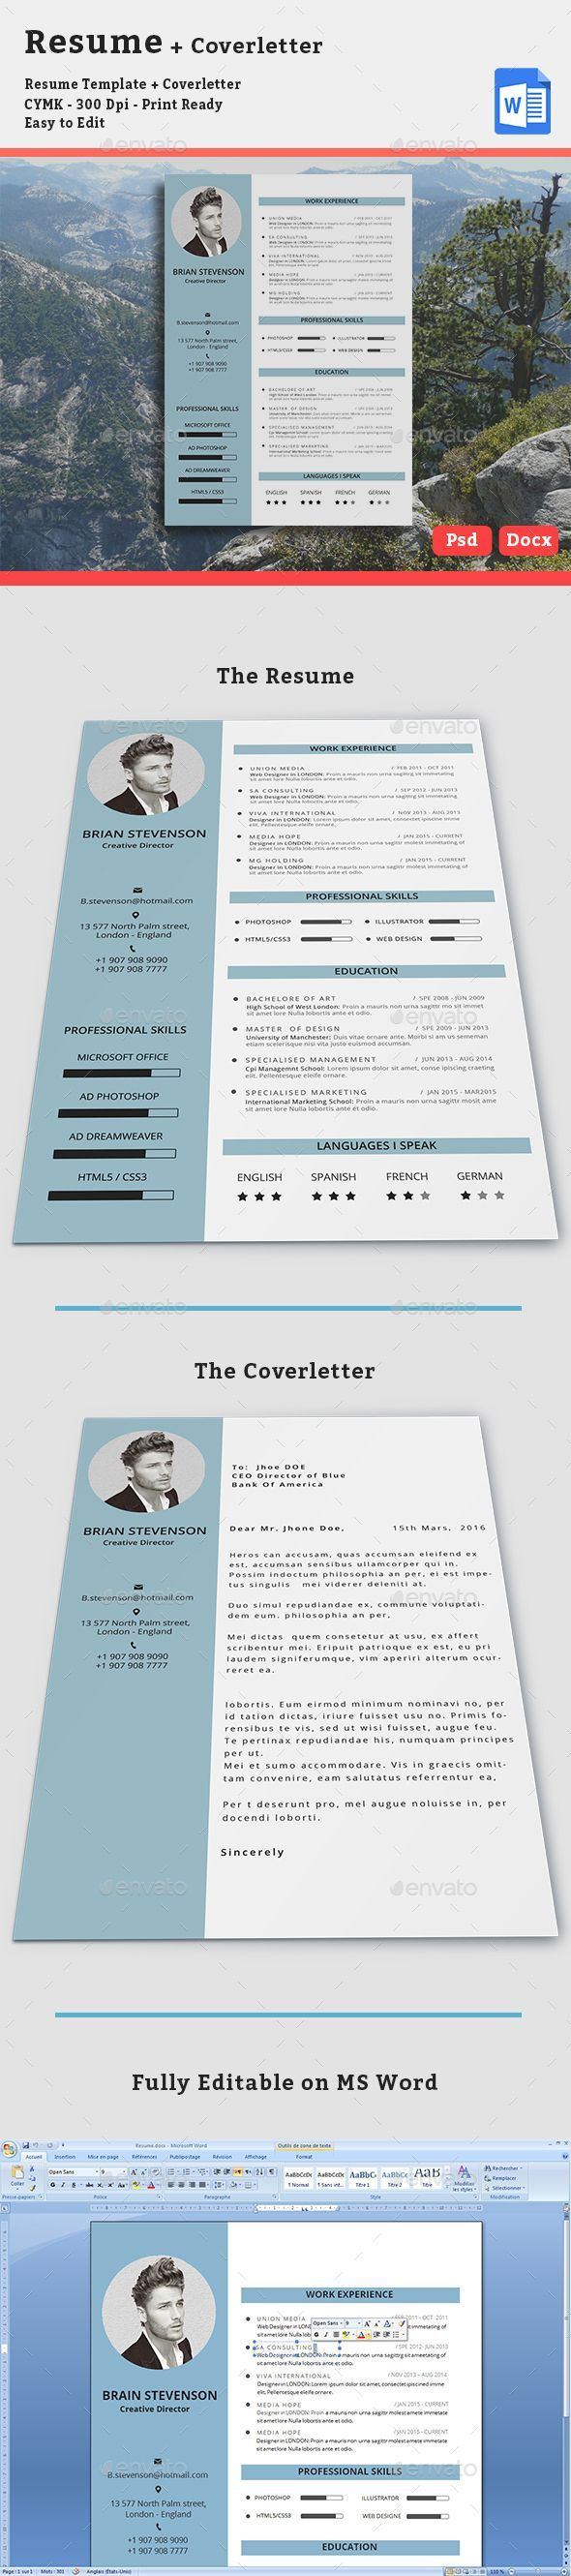 How To Make A Strong Resume Professional Resume Template  Cover Letter For Ms Word  Modern Cv .